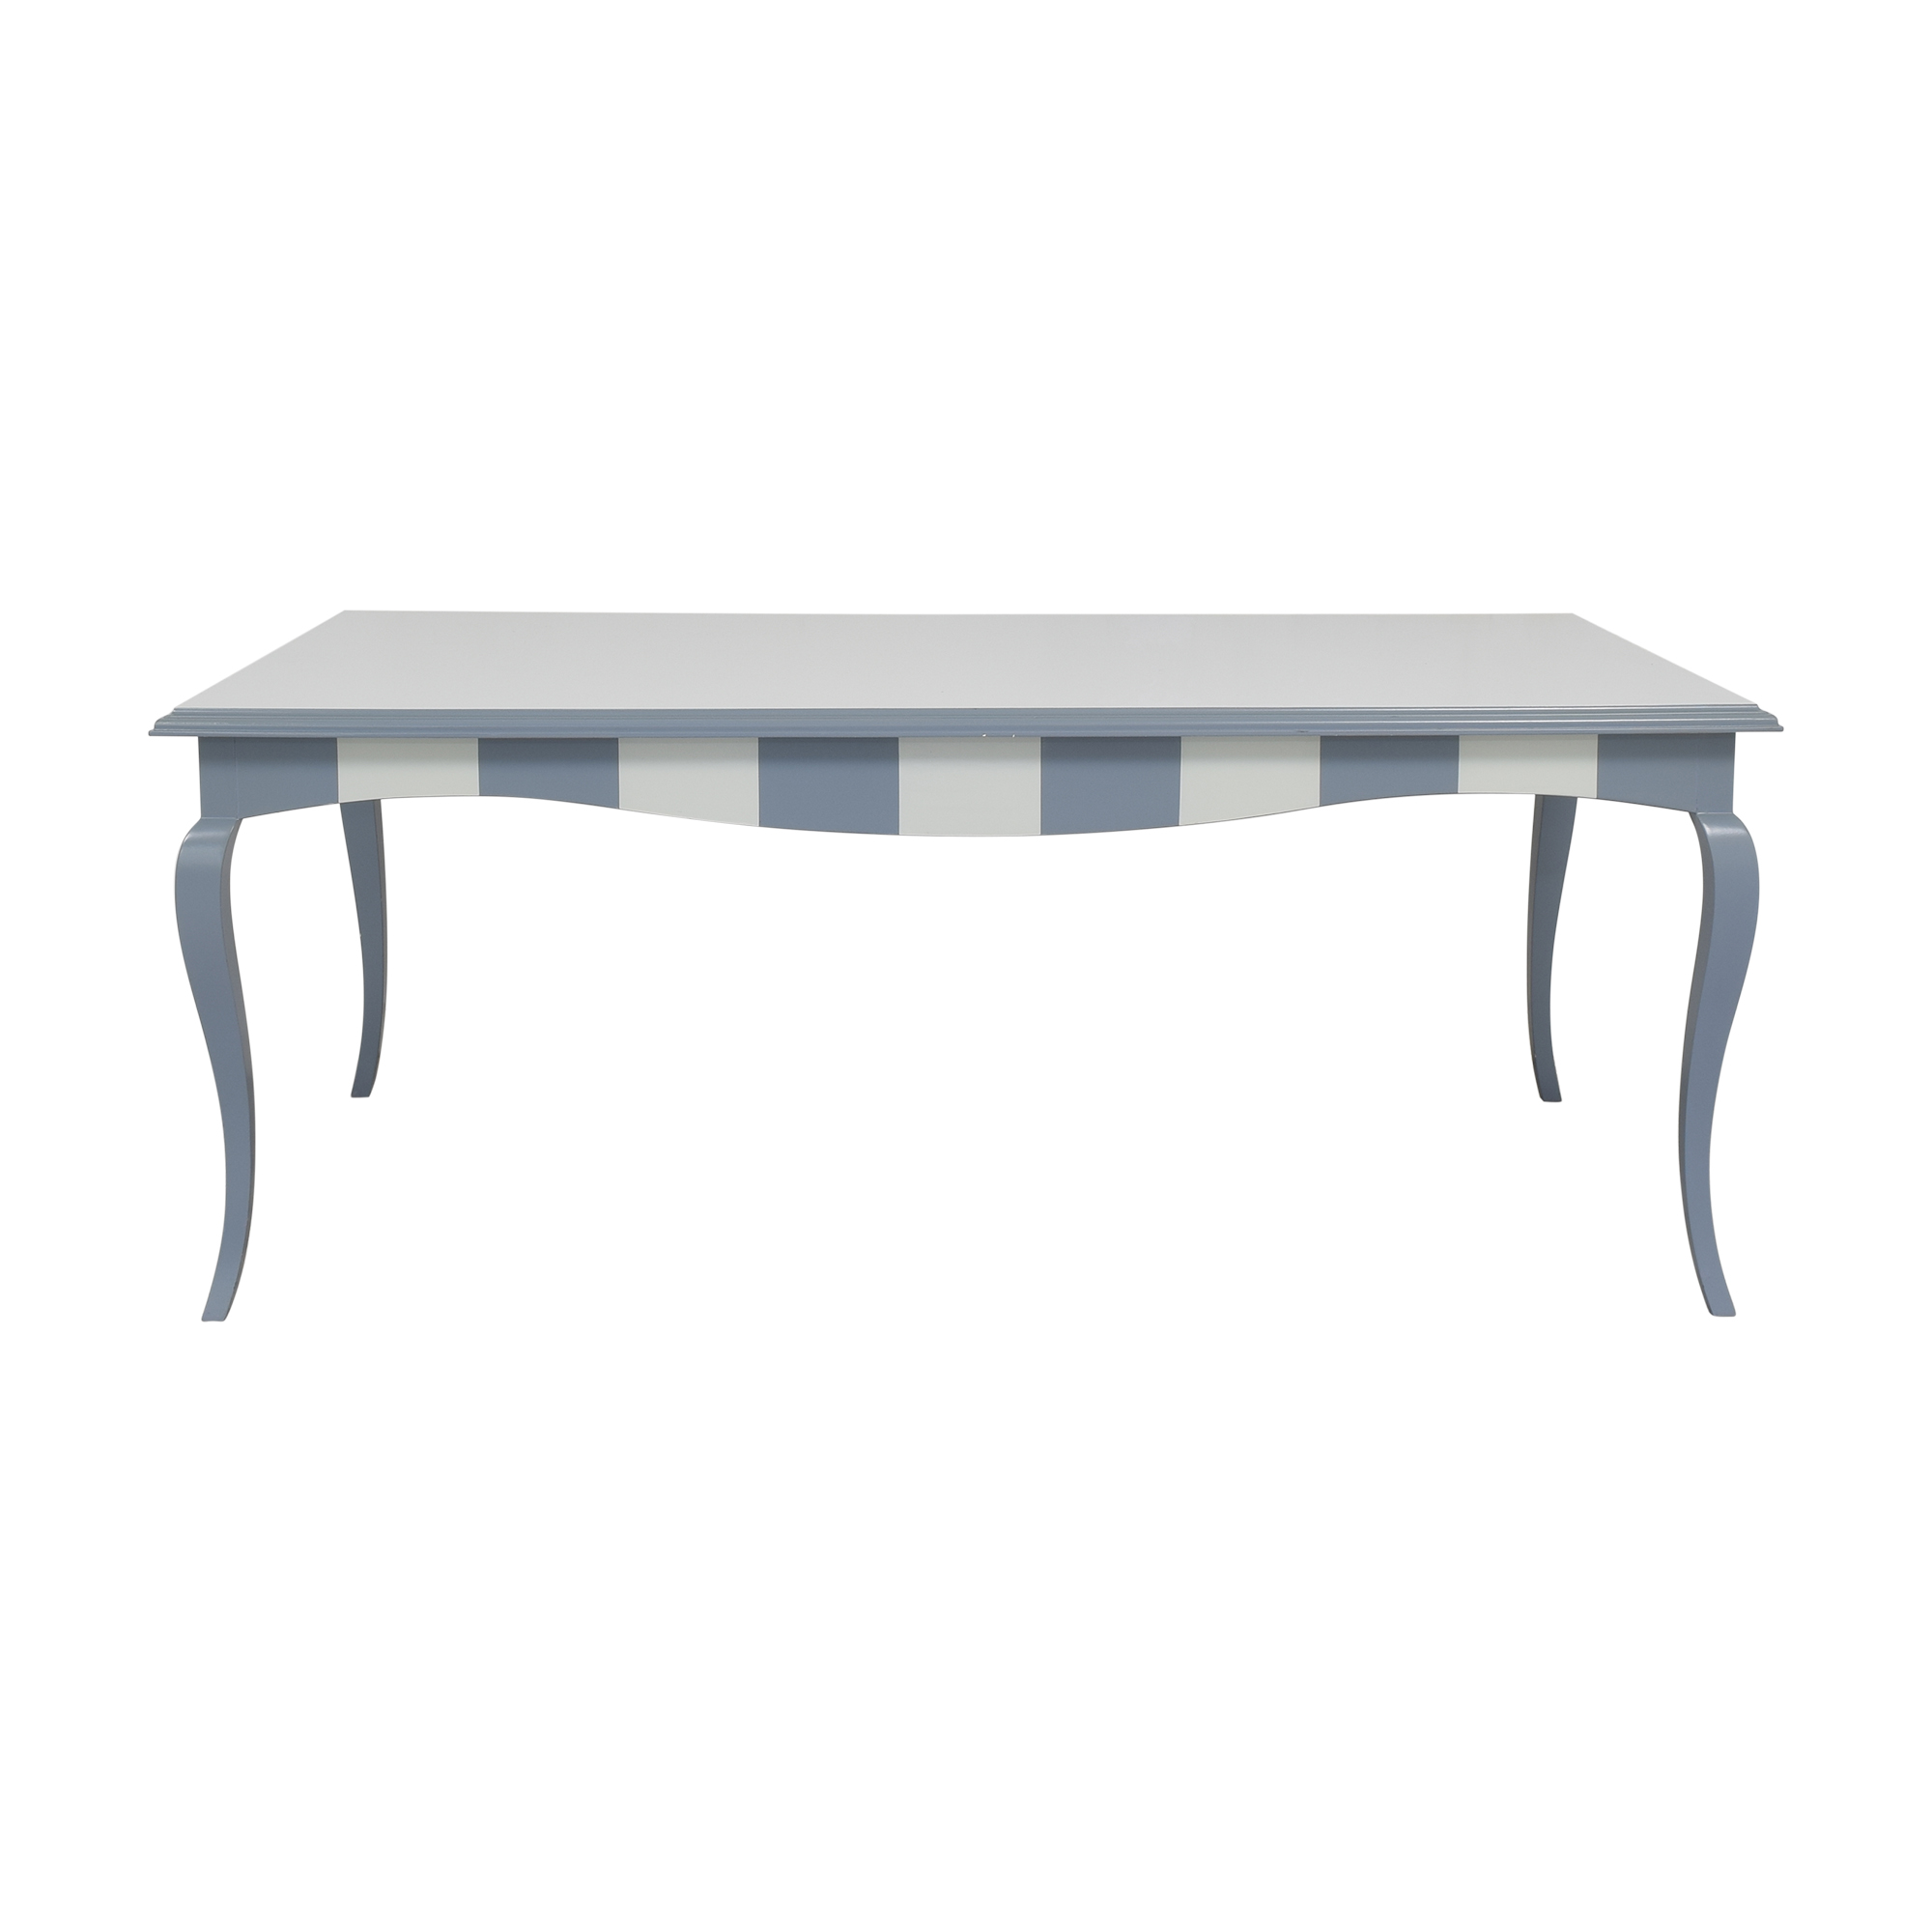 Urbangreen French Country Dining Table sale